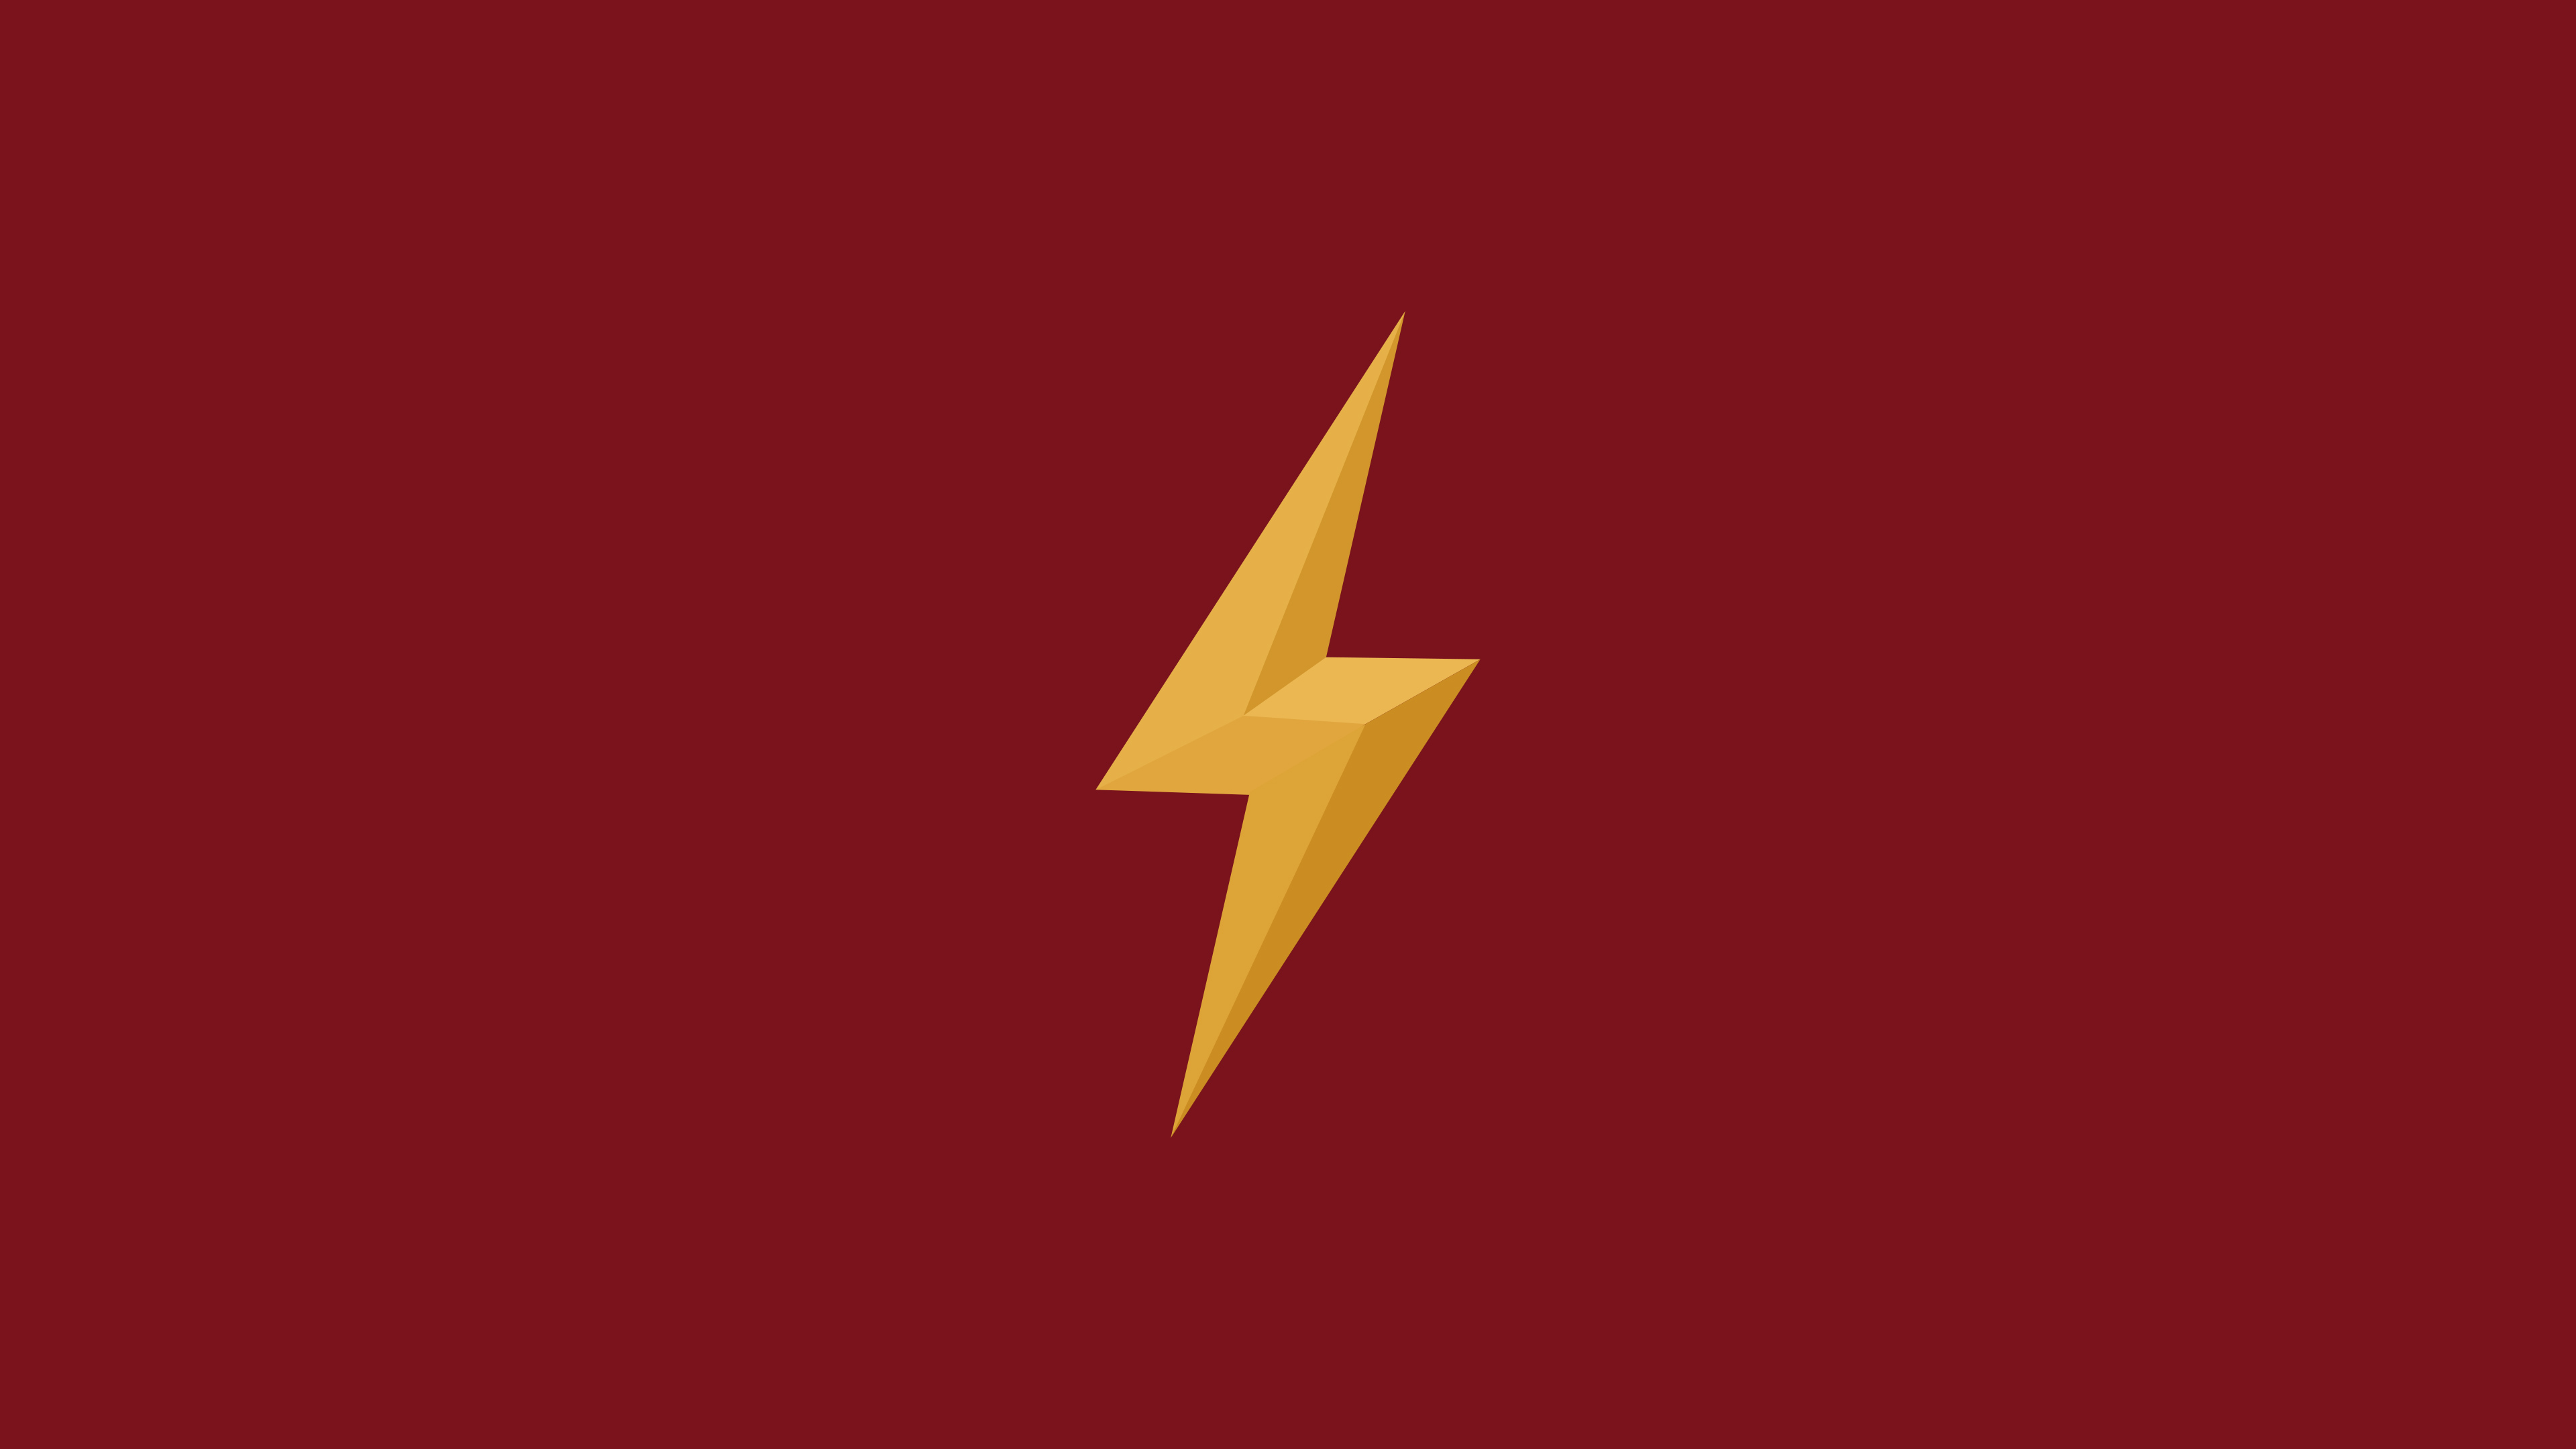 flash logo art 1570394560 - Flash Logo Art - superheroes wallpapers, logo wallpapers, hd-wallpapers, flash wallpapers, digital art wallpapers, artwork wallpapers, artist wallpapers, 4k-wallpapers